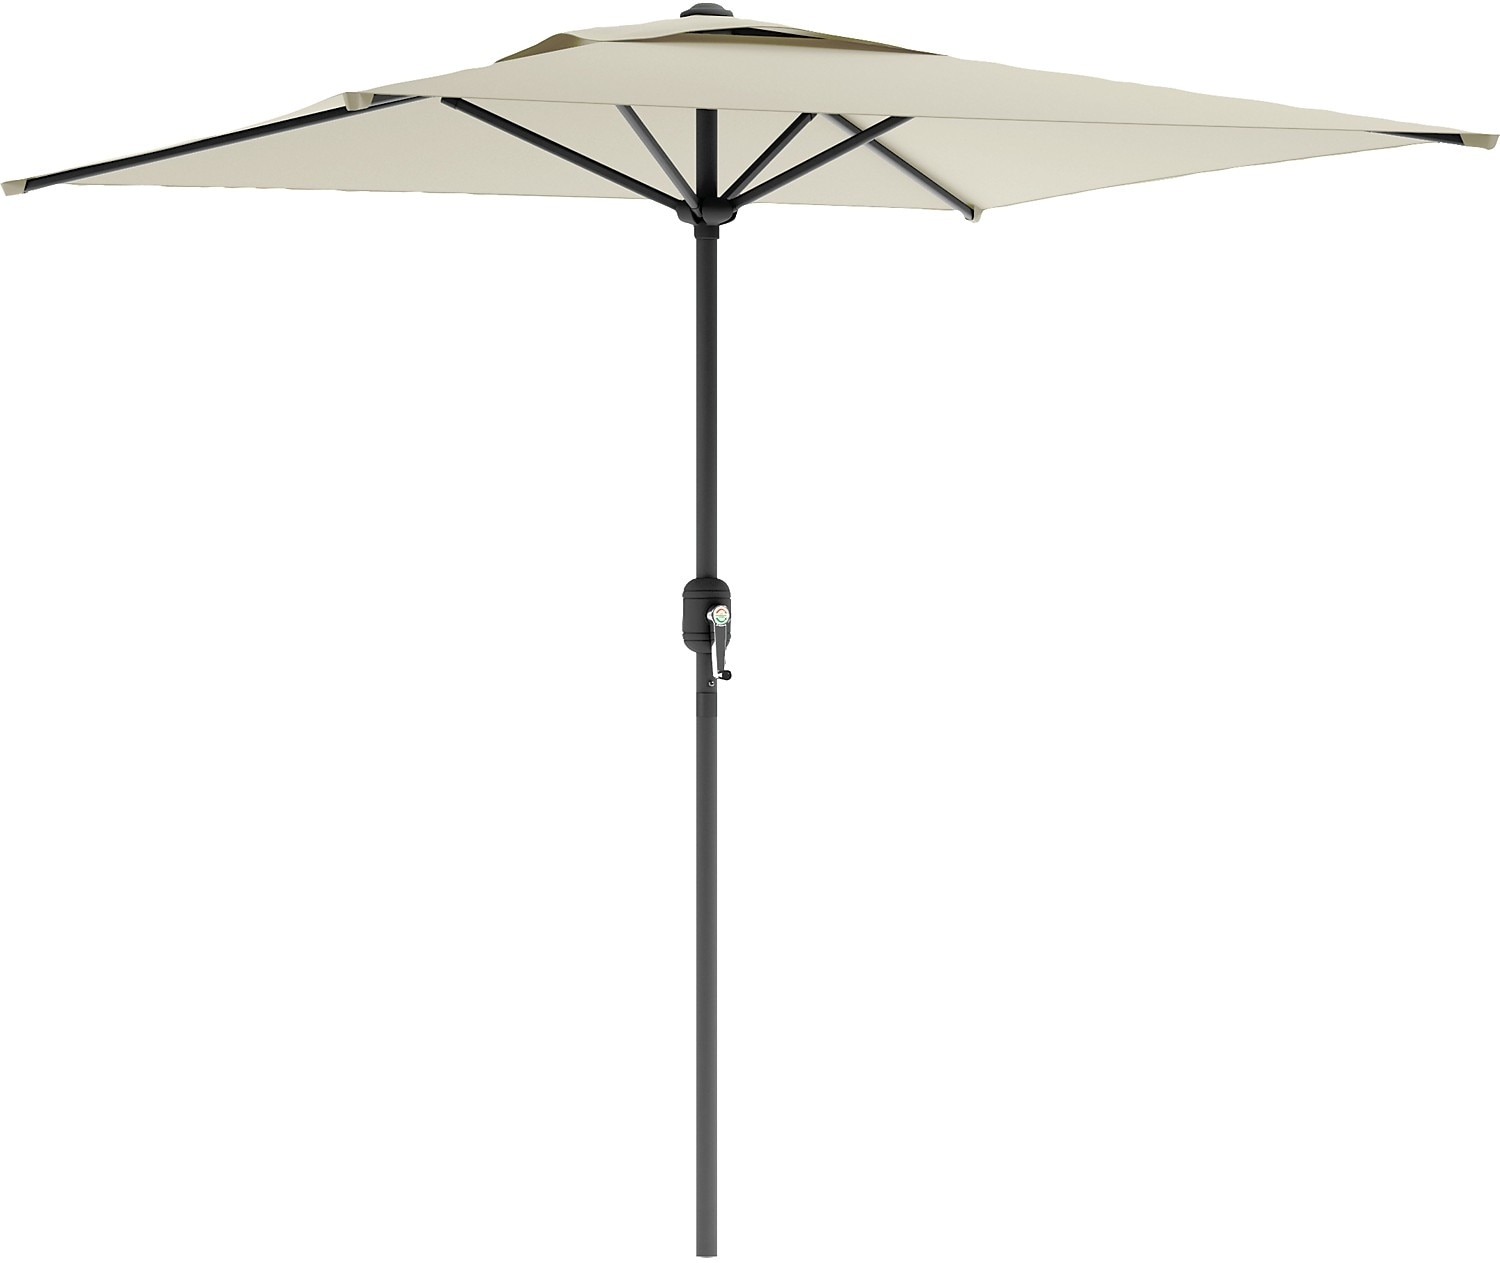 Square Patio Umbrella – Warm White